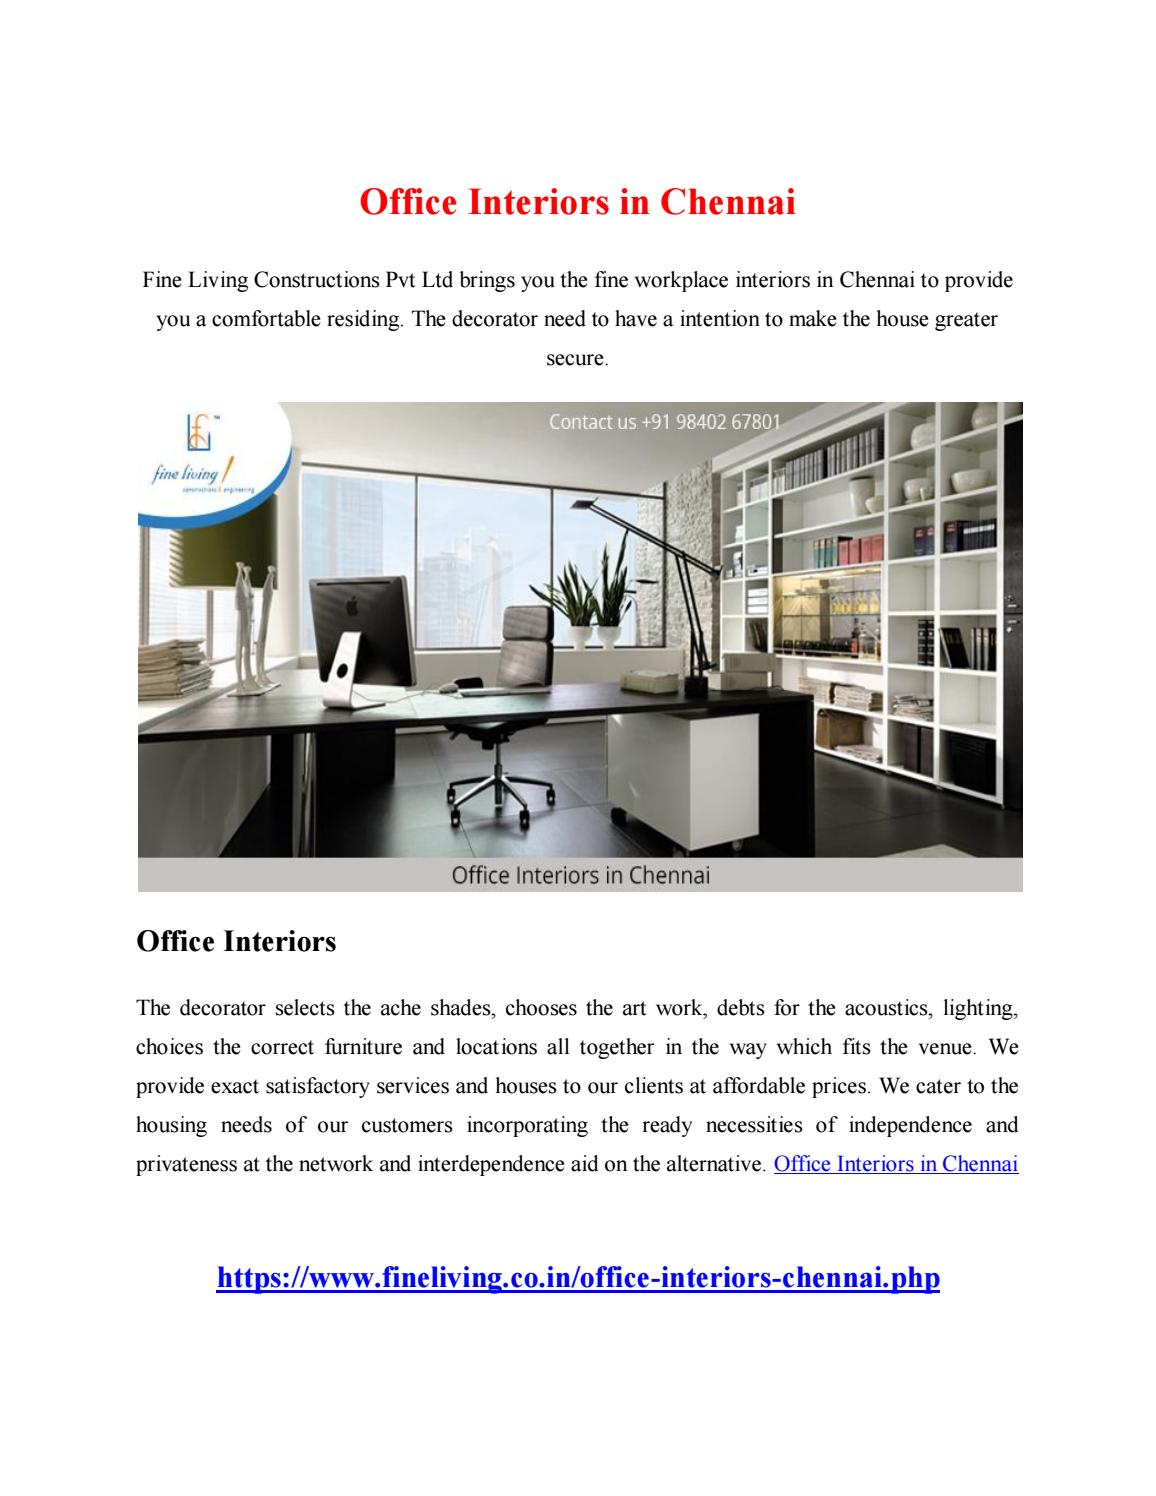 Office Interiors in Chennai by devashree5 - issuu